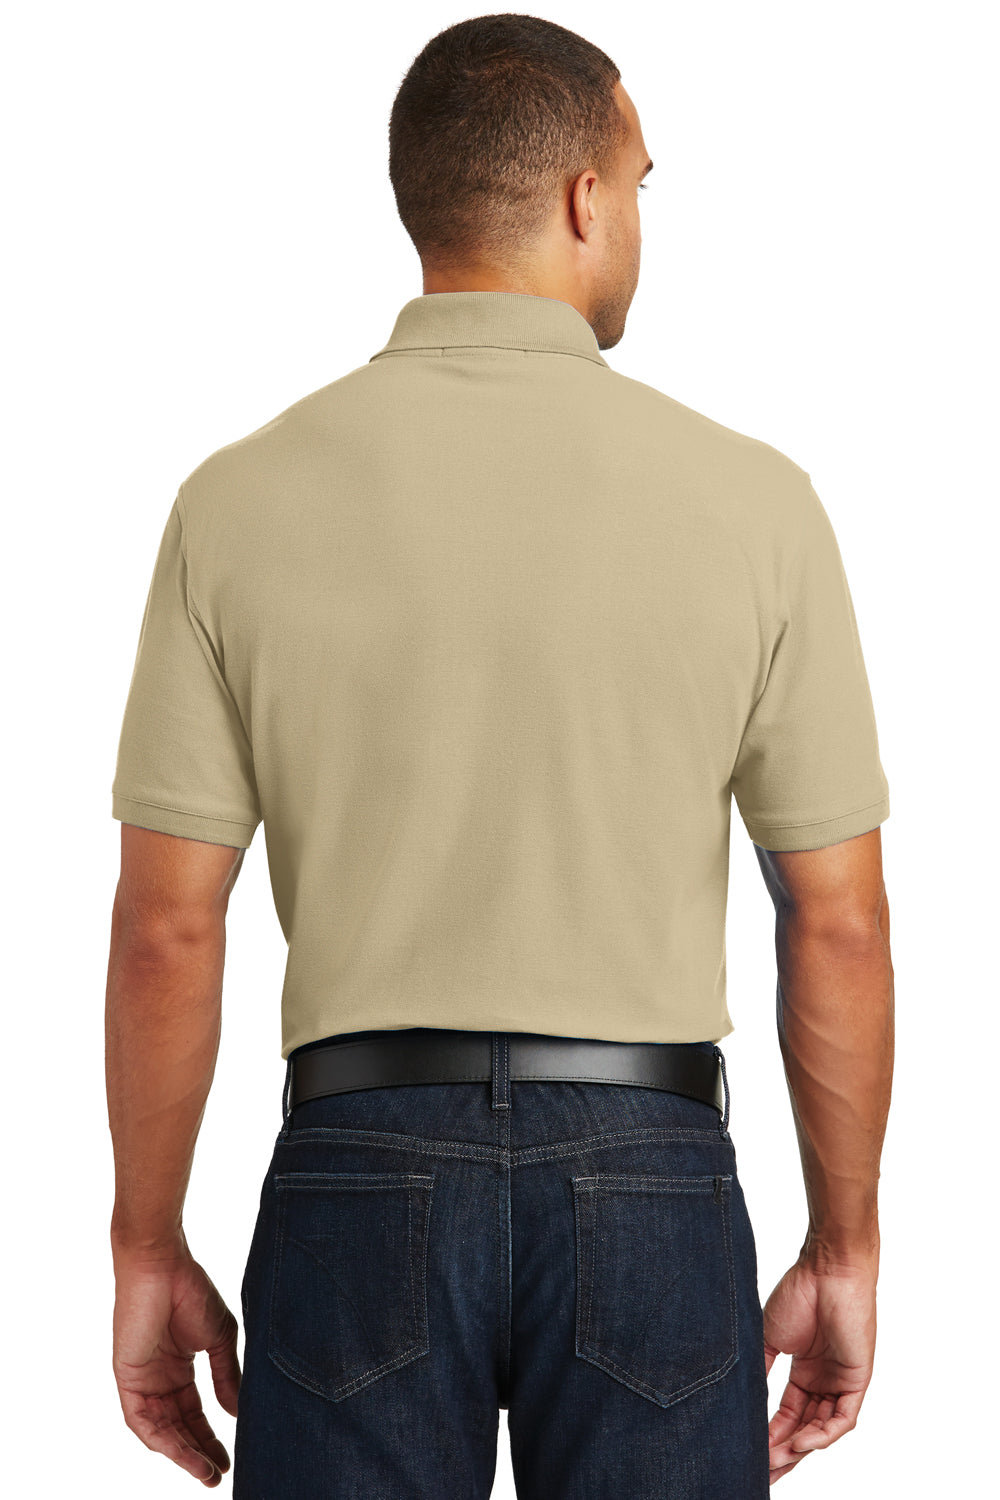 Port Authority K100P Mens Core Classic Short Sleeve Polo Shirt w/ Pocket Wheat Back